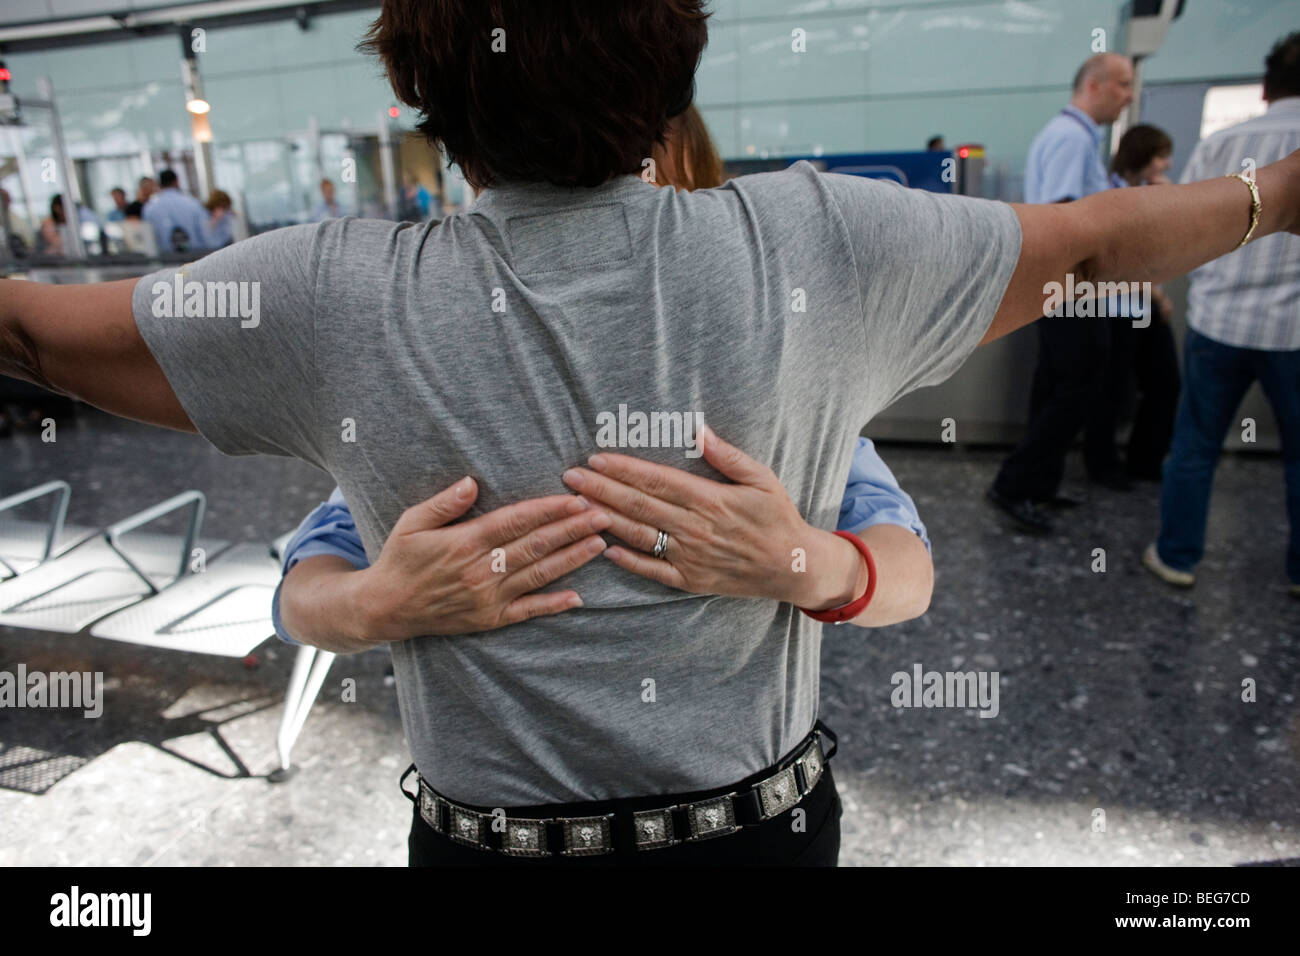 Female security operative feels around a male passenger's back for suspect items during search at Heathrow Airport's - Stock Image